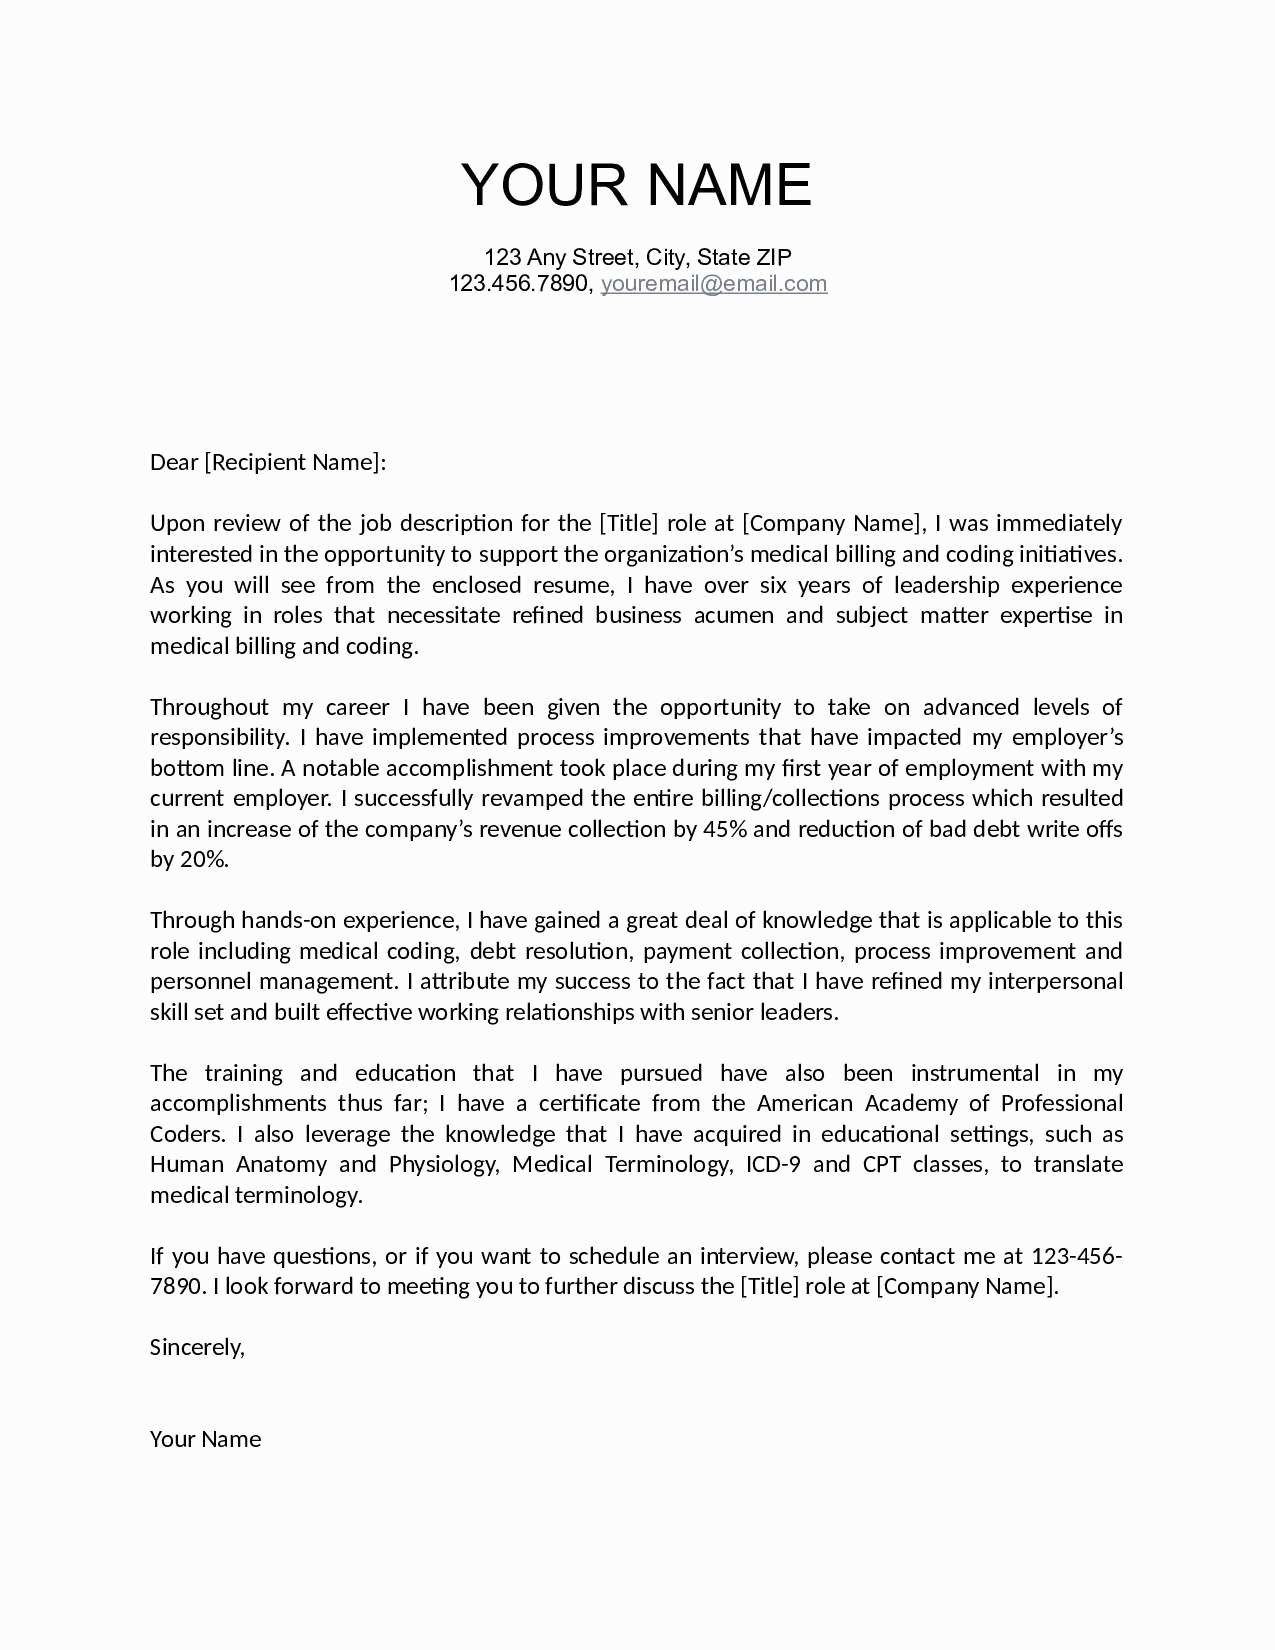 Letter Of Intent Template Word - Writing A Letter Intent for A Job New Job Fer Letter Template Us